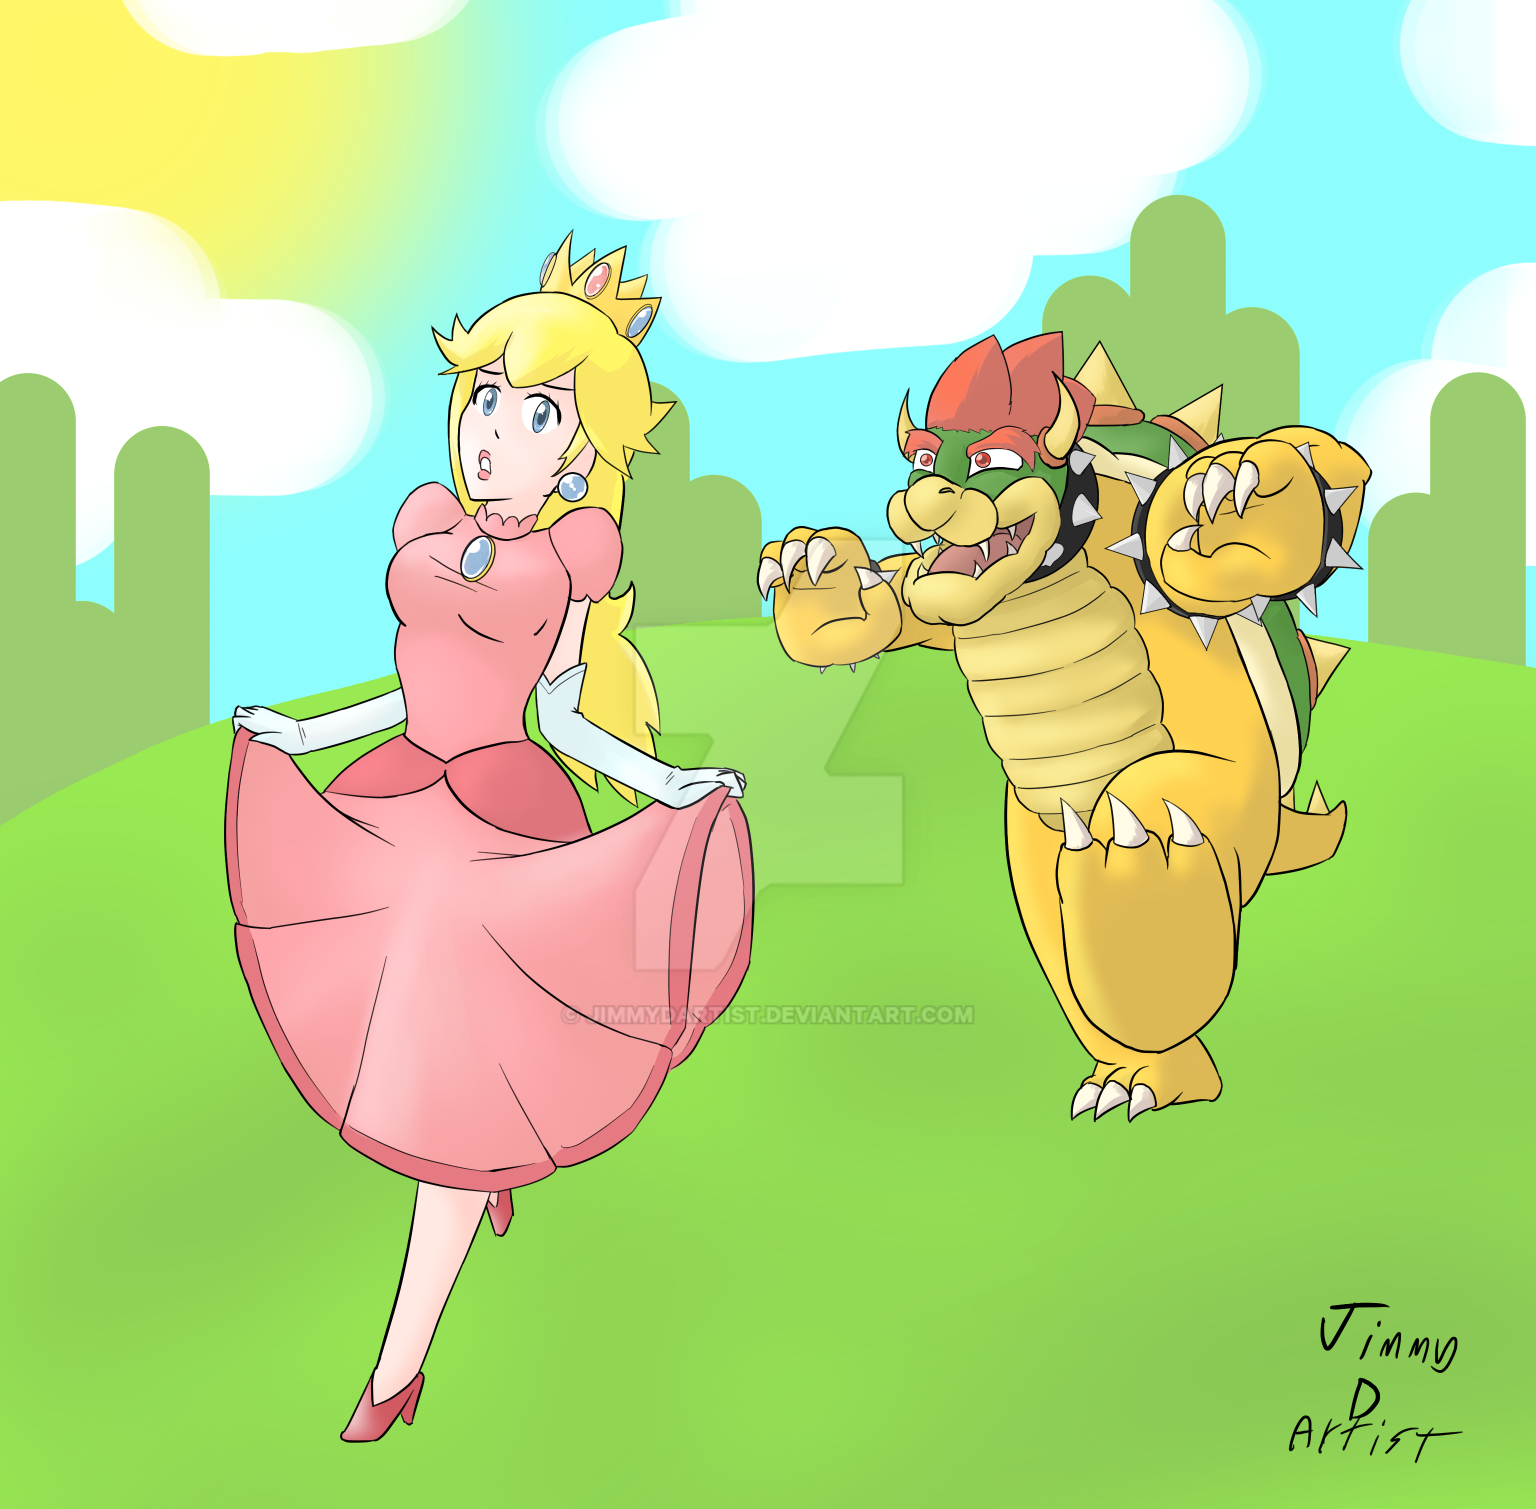 Peach and Bowser by JimmyDArtist on DeviantArt